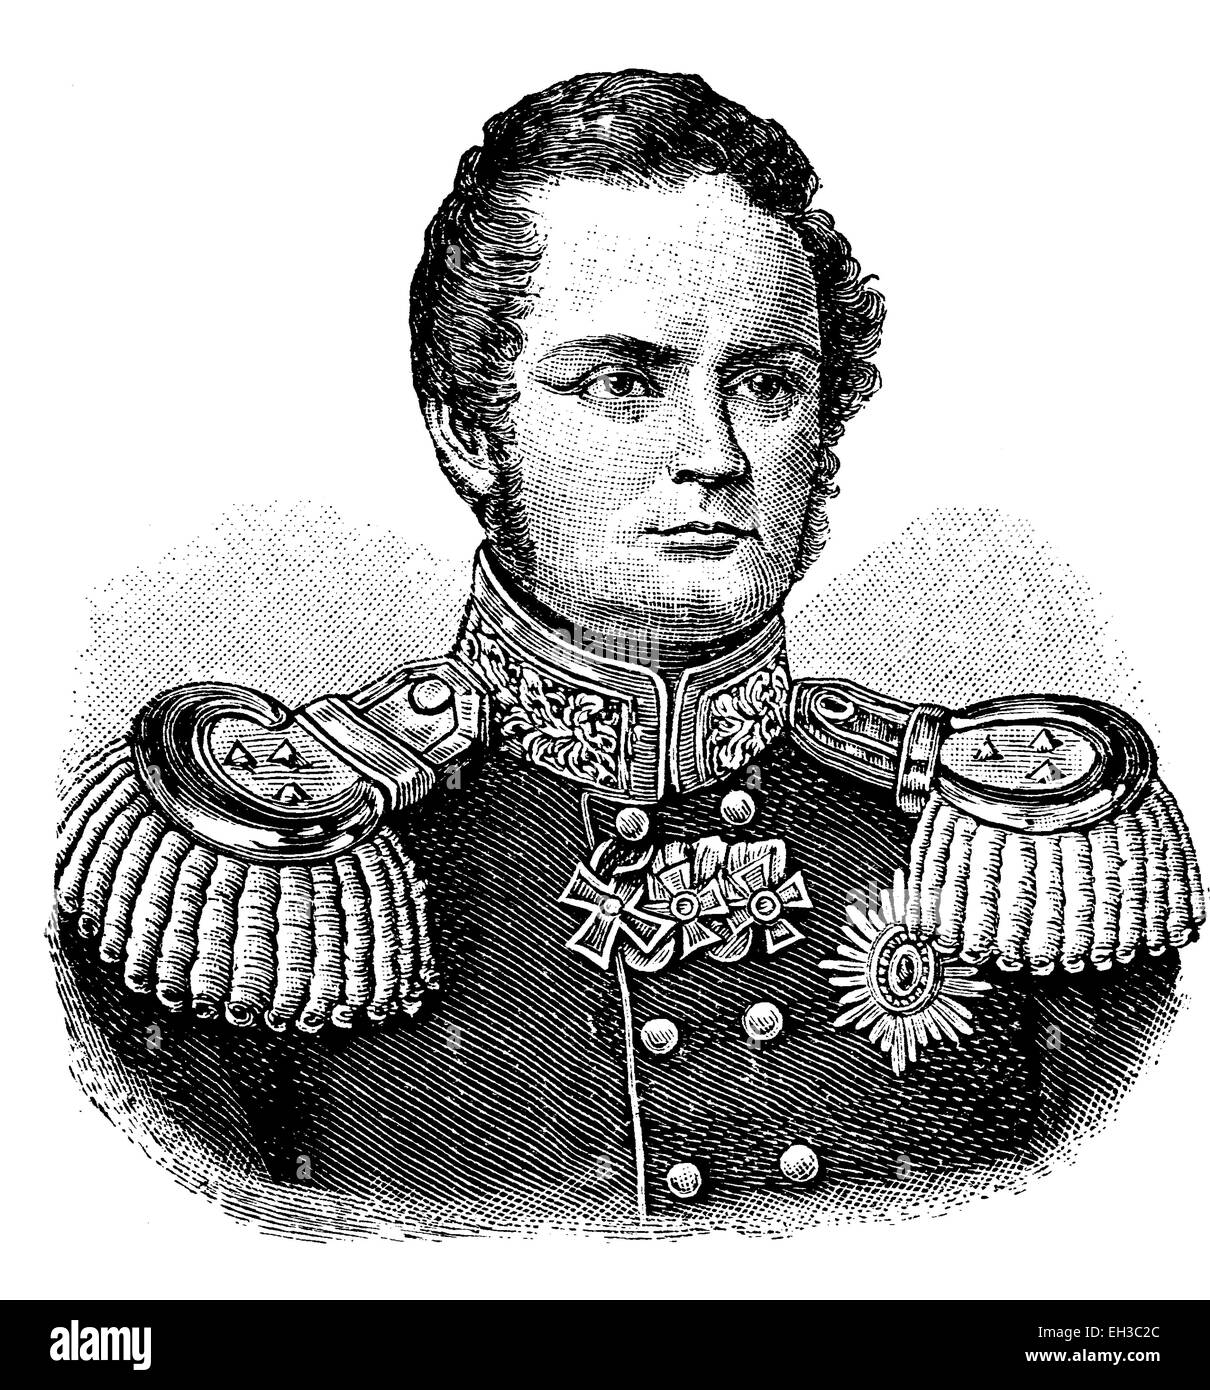 Friedrich Wilhelm IV, Frederick William IV of Prussia, 1795-1861, King of Prussia, historic woodcut, c. 1880 - Stock Image